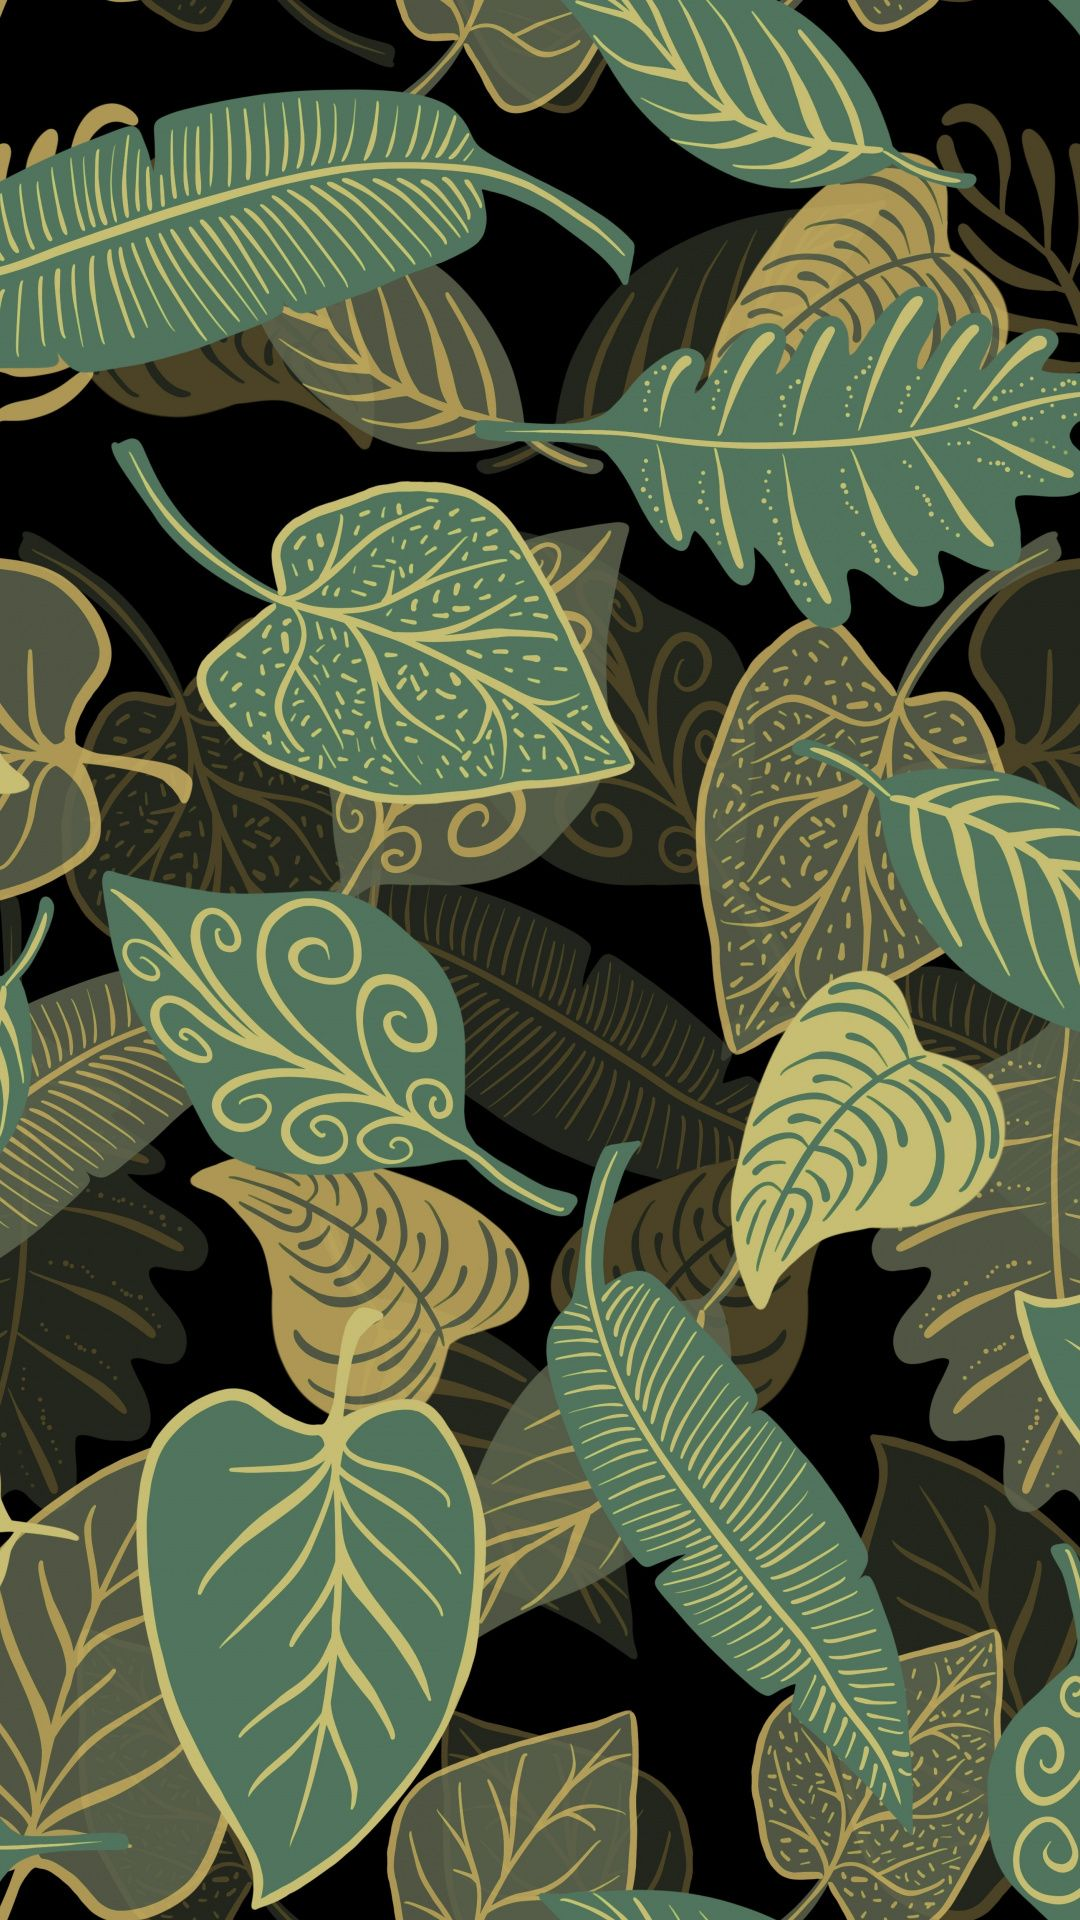 Green leaves abstract illustration 1080x1920 wallpaper